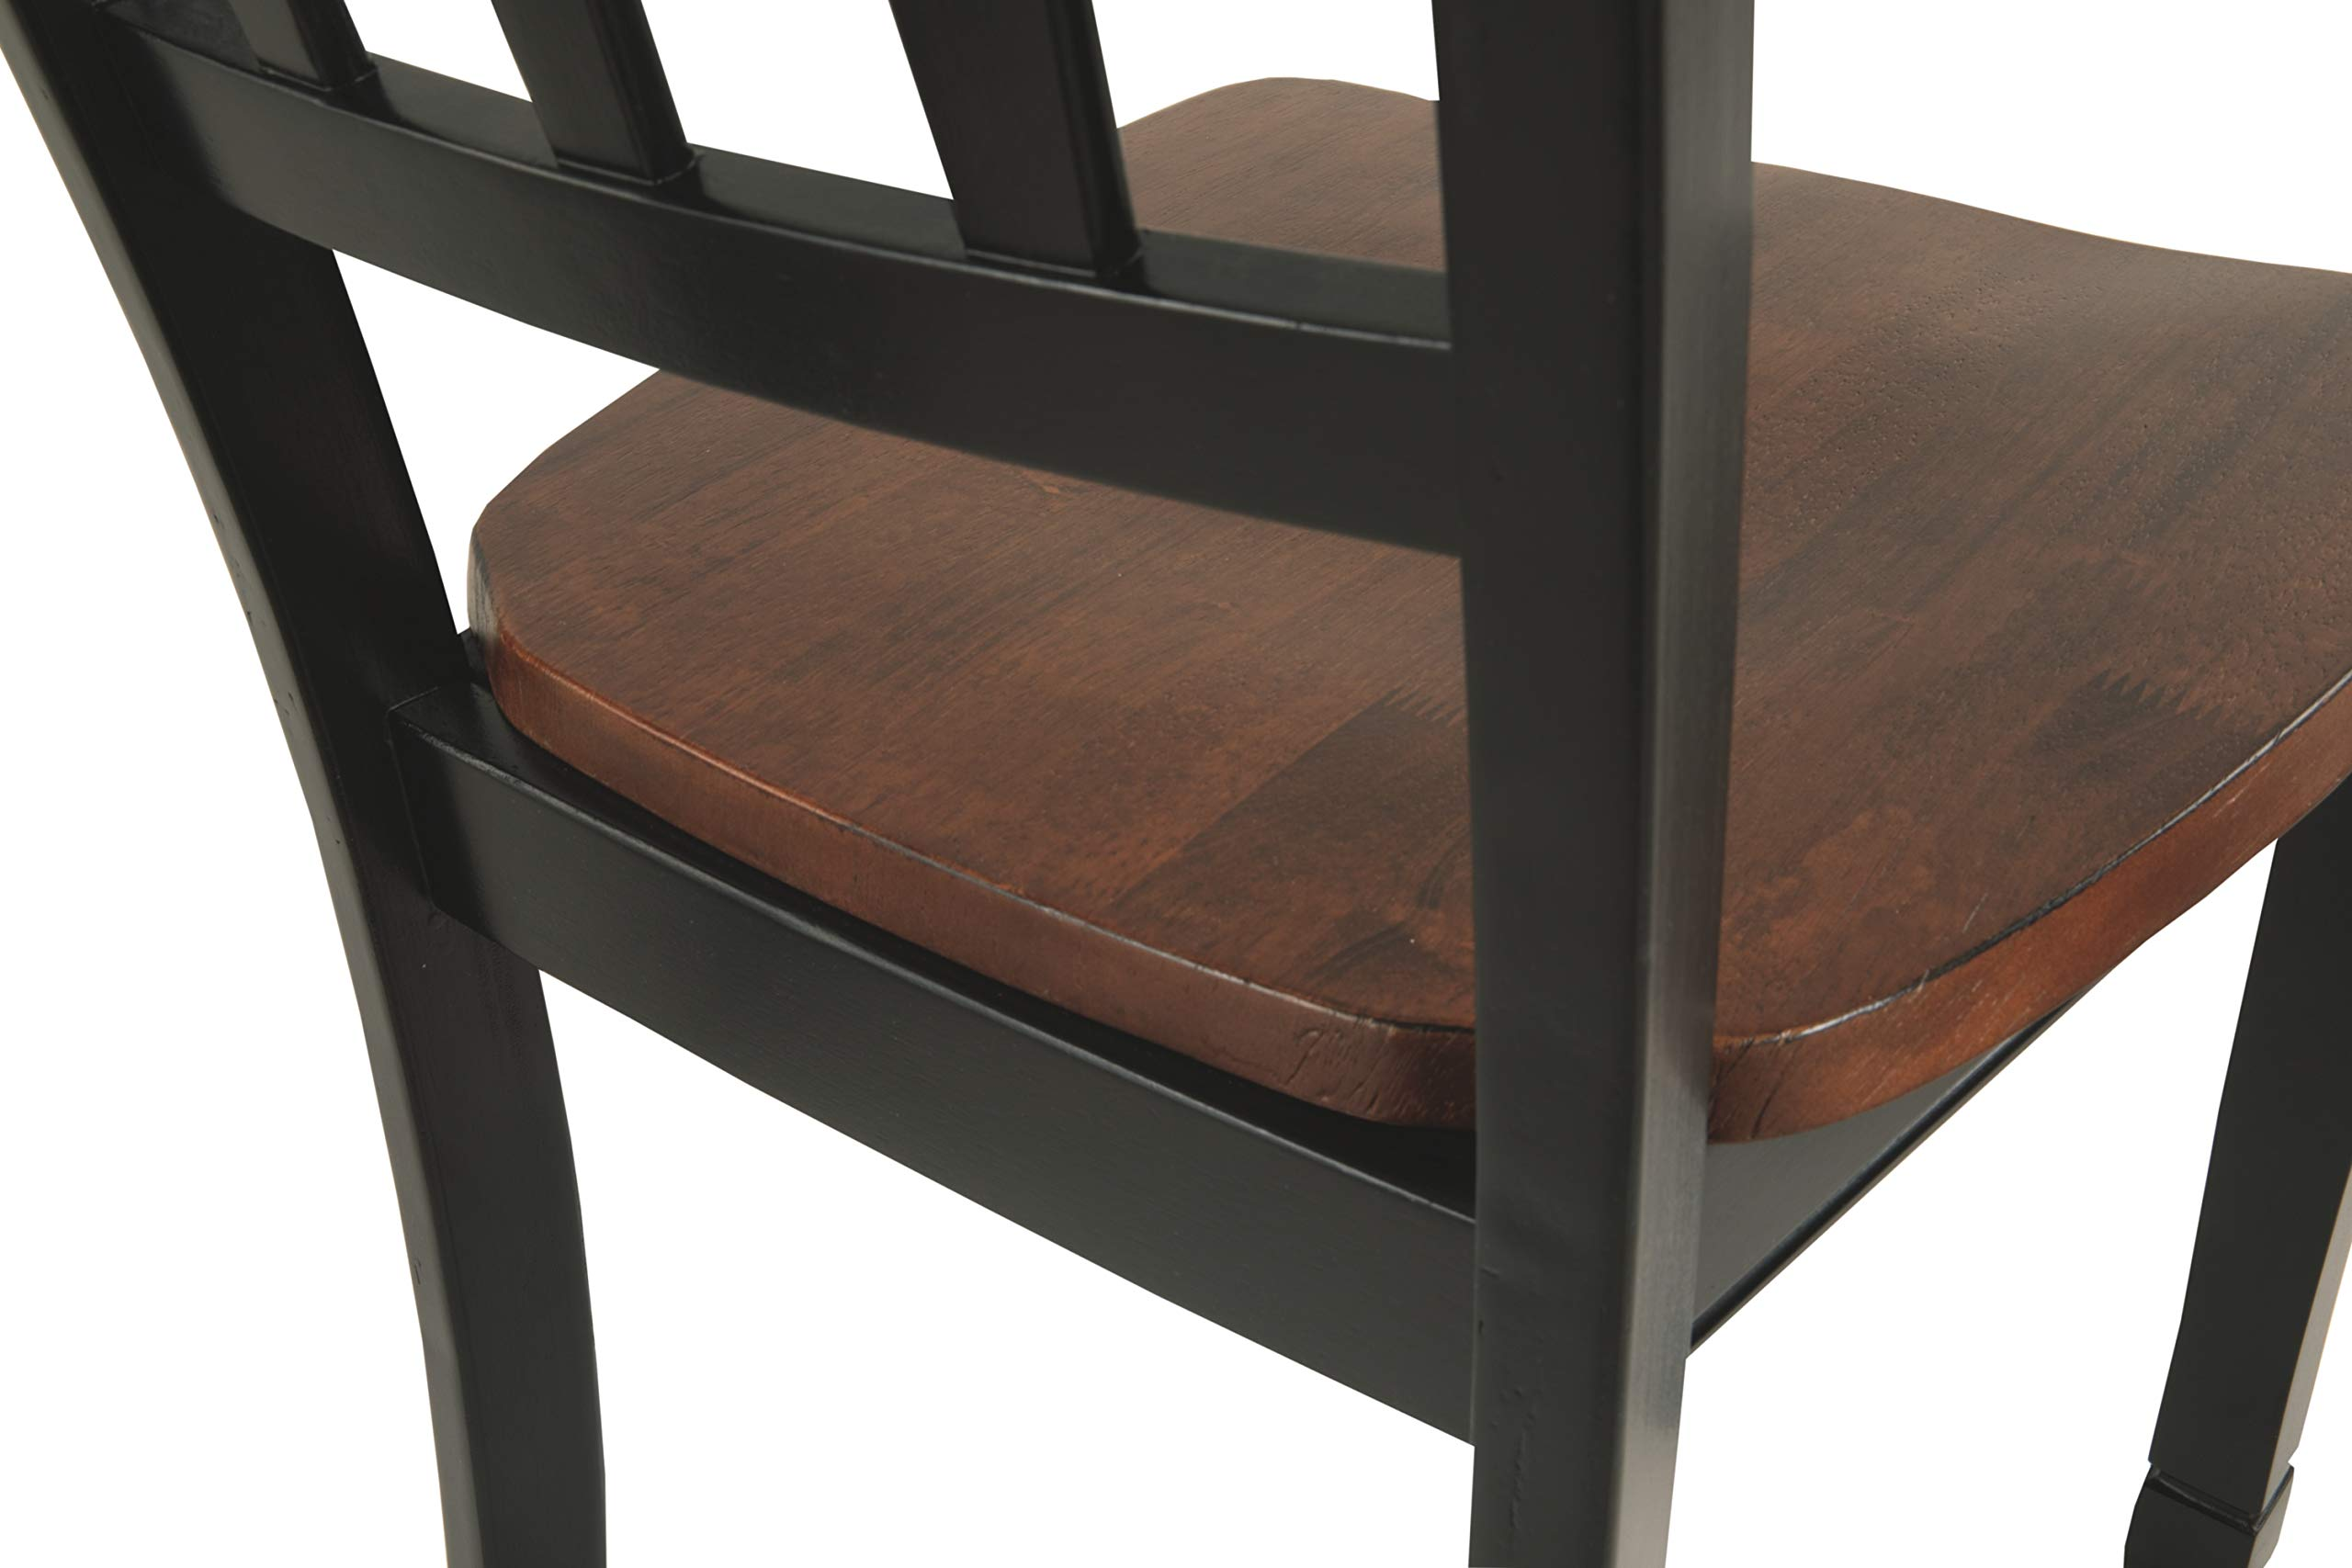 Ashley Furniture Signature Design - Owingsville Dining Room Side Chair - Latter Back - Set of 2 - Black-Brown by Signature Design by Ashley (Image #4)